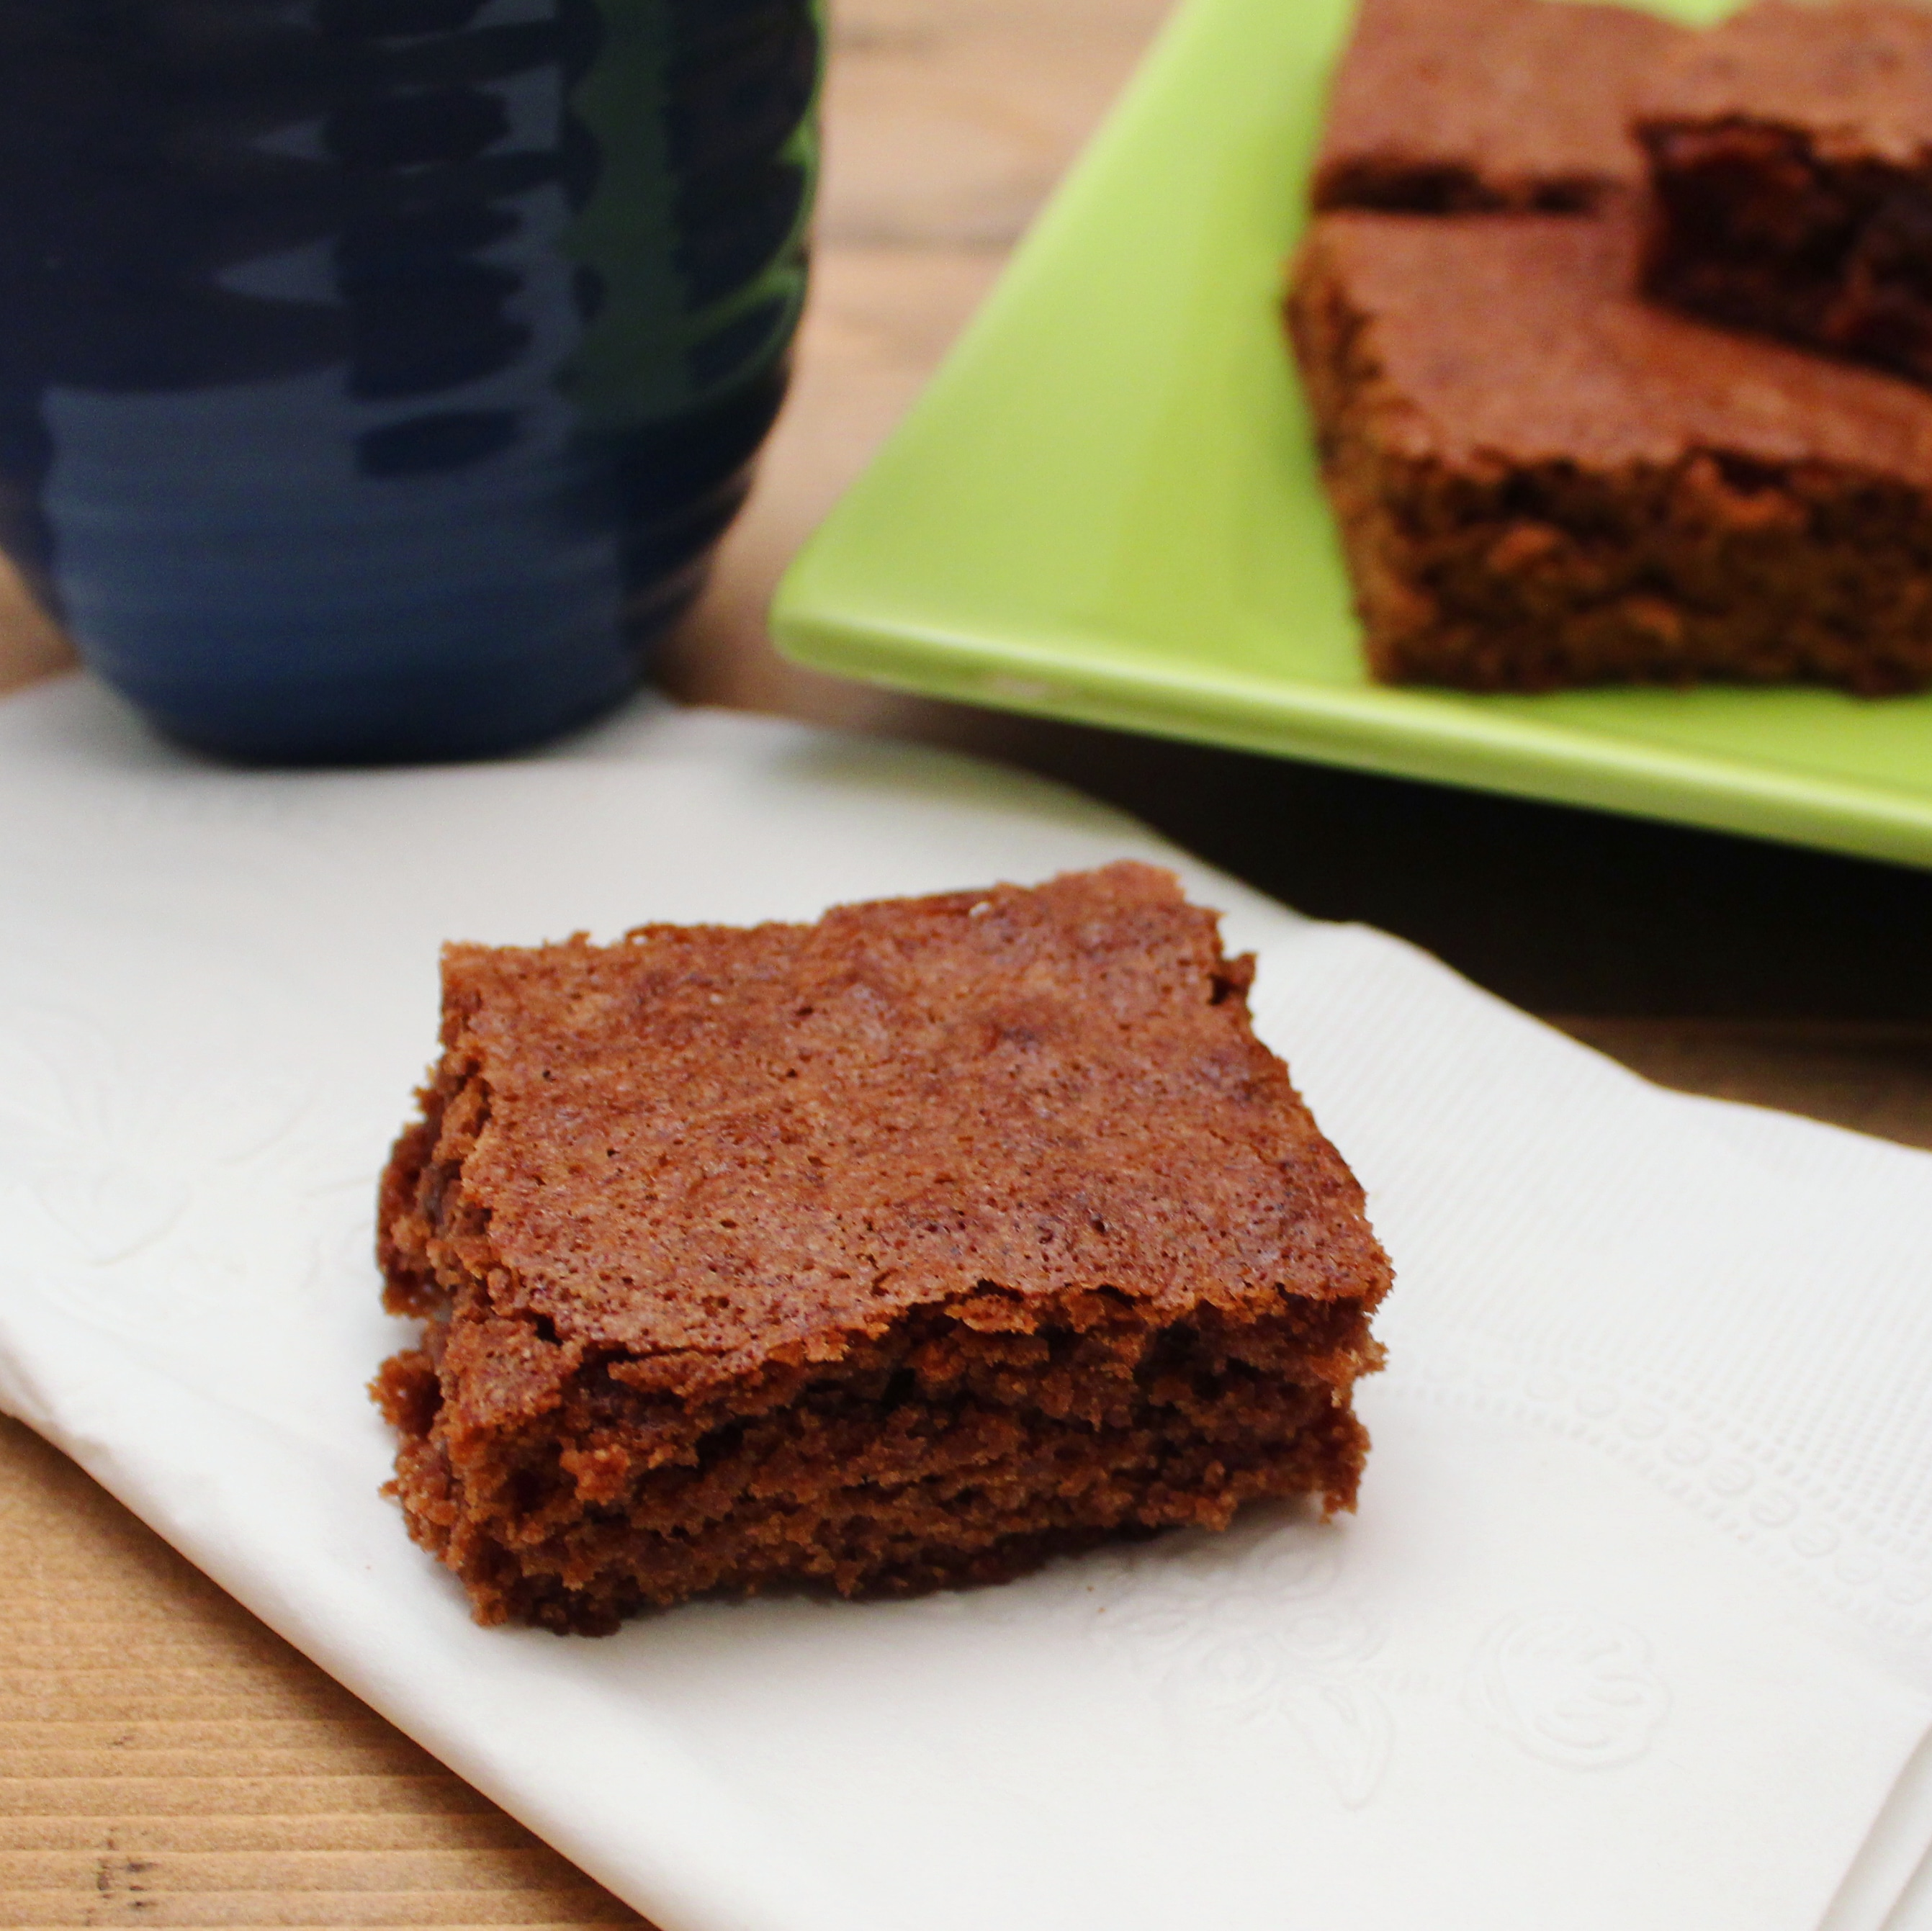 Mish's Homemade Coffee Brownies